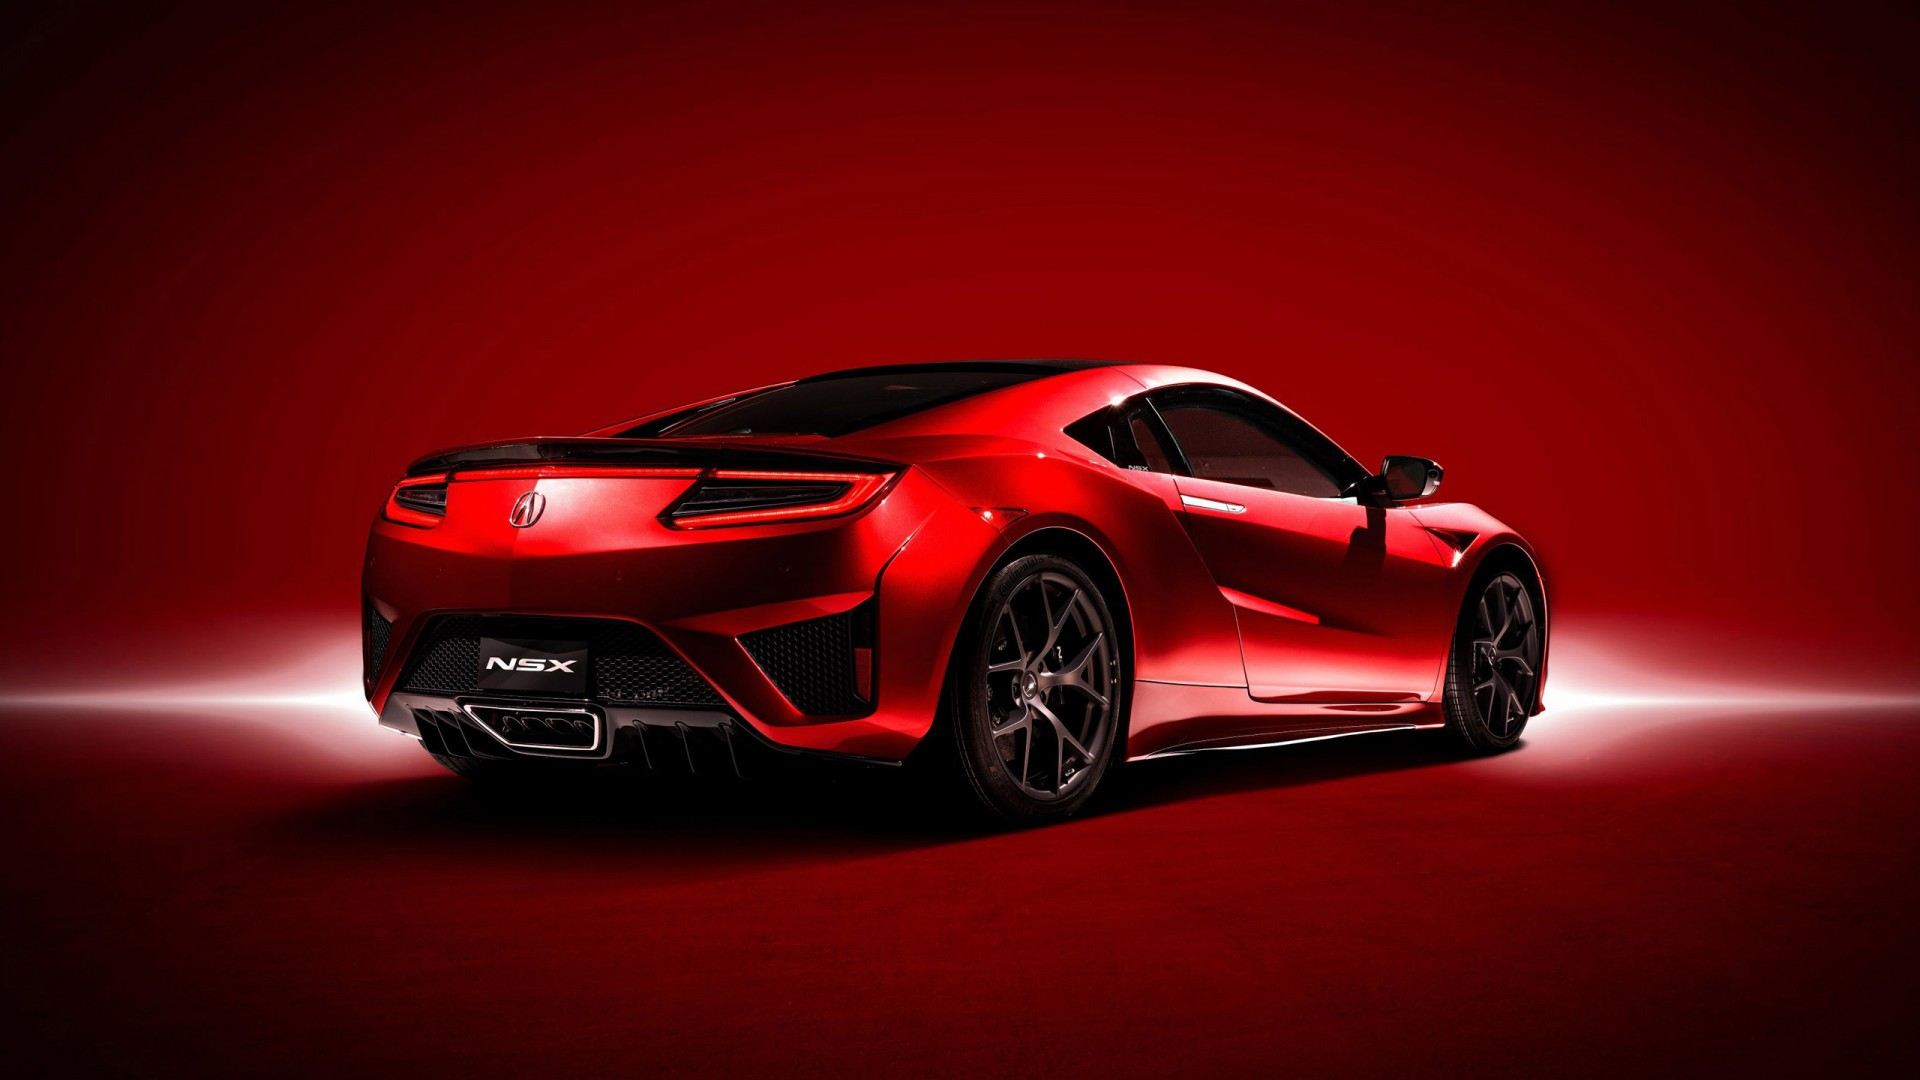 Car Wallpapers 4k Bentely Acura Nsx 2017 2 Wallpaper Hd Car Wallpapers Id 6576